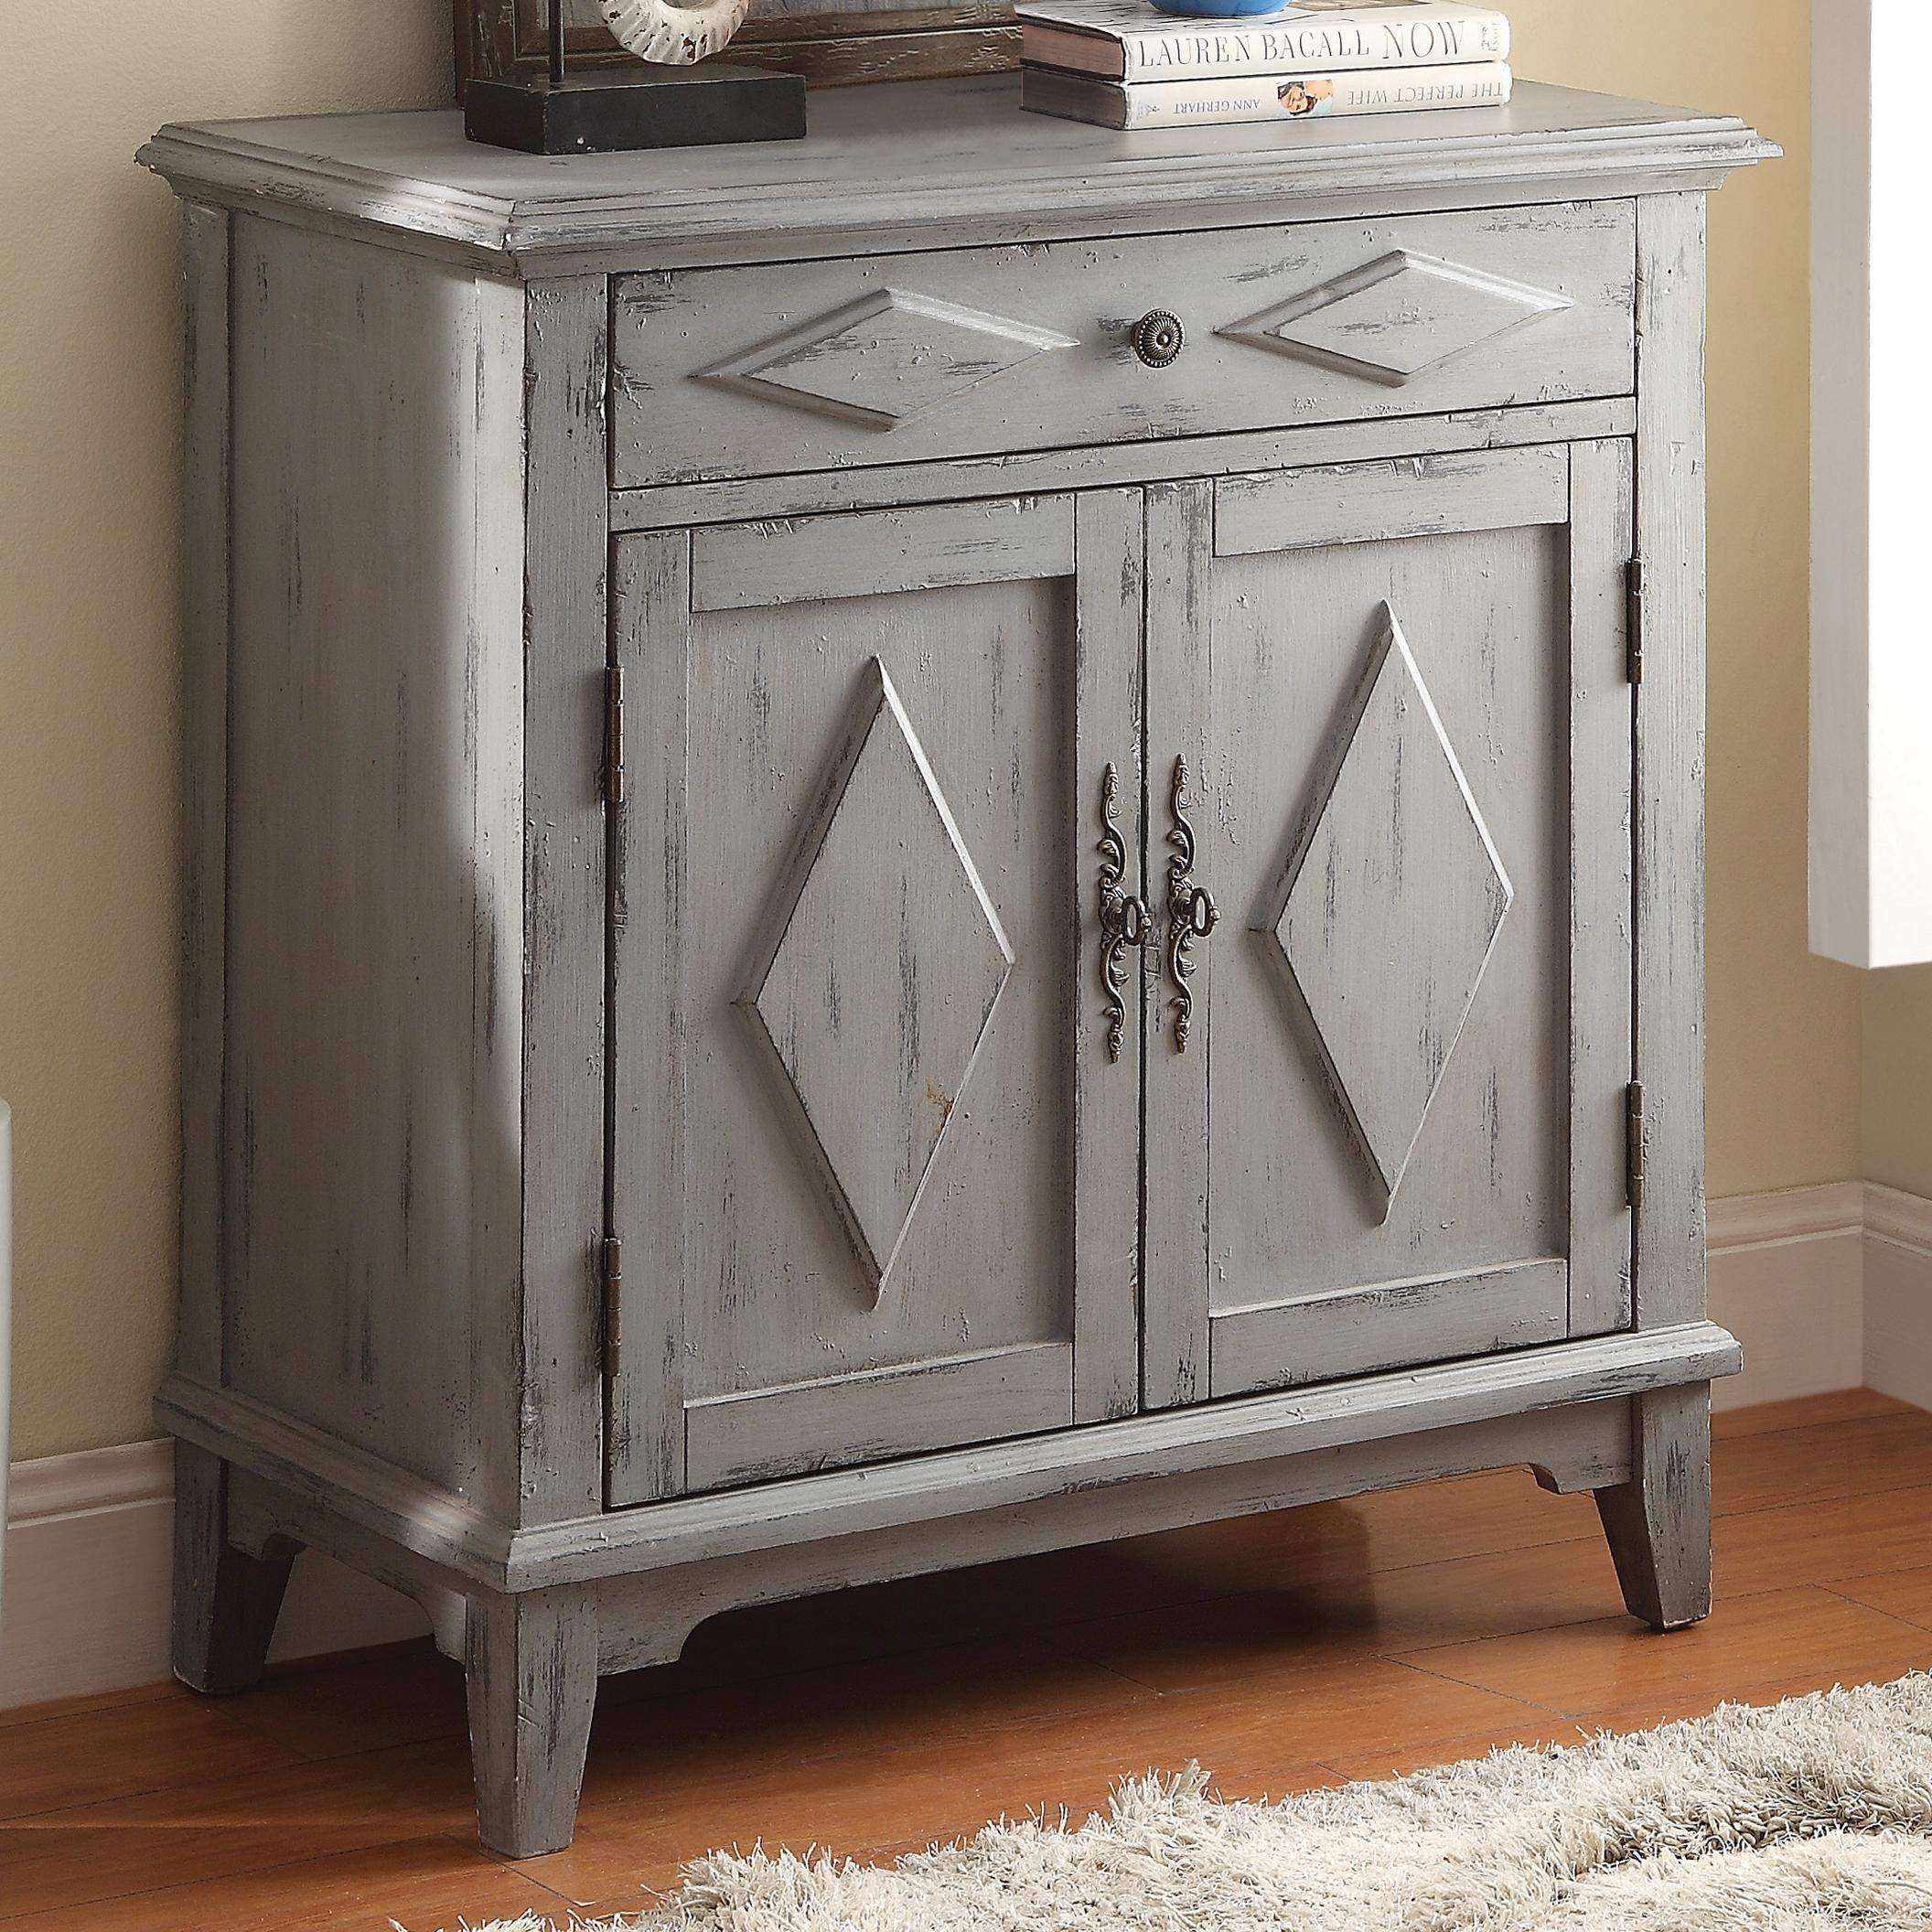 You are here: Home > Shop > Products > Accent Cabinets Distressed Blue